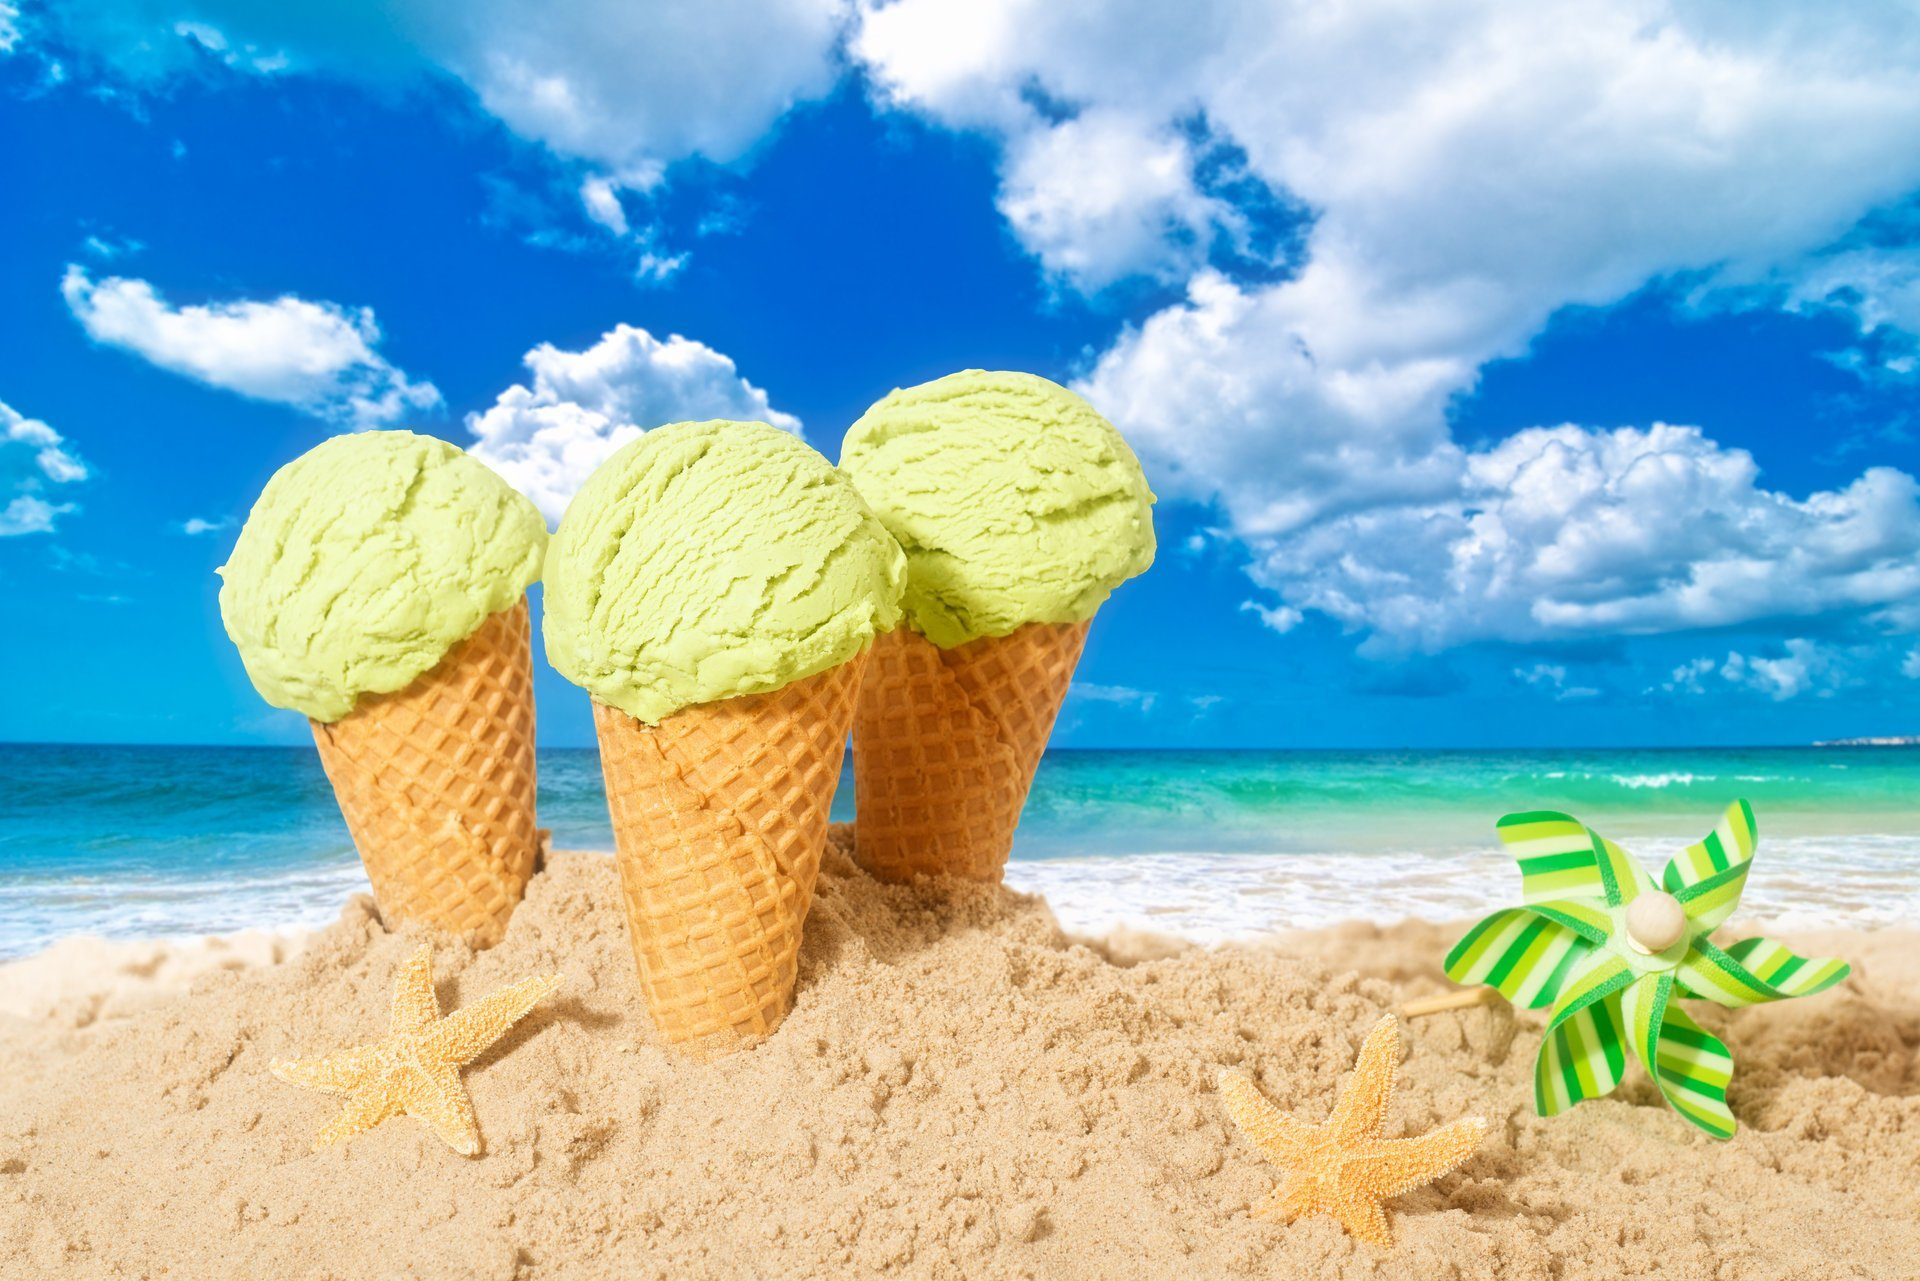 ice-cream-beach-sand-summer-sea-dessert-ice-cream-beach-sand-horn-summer